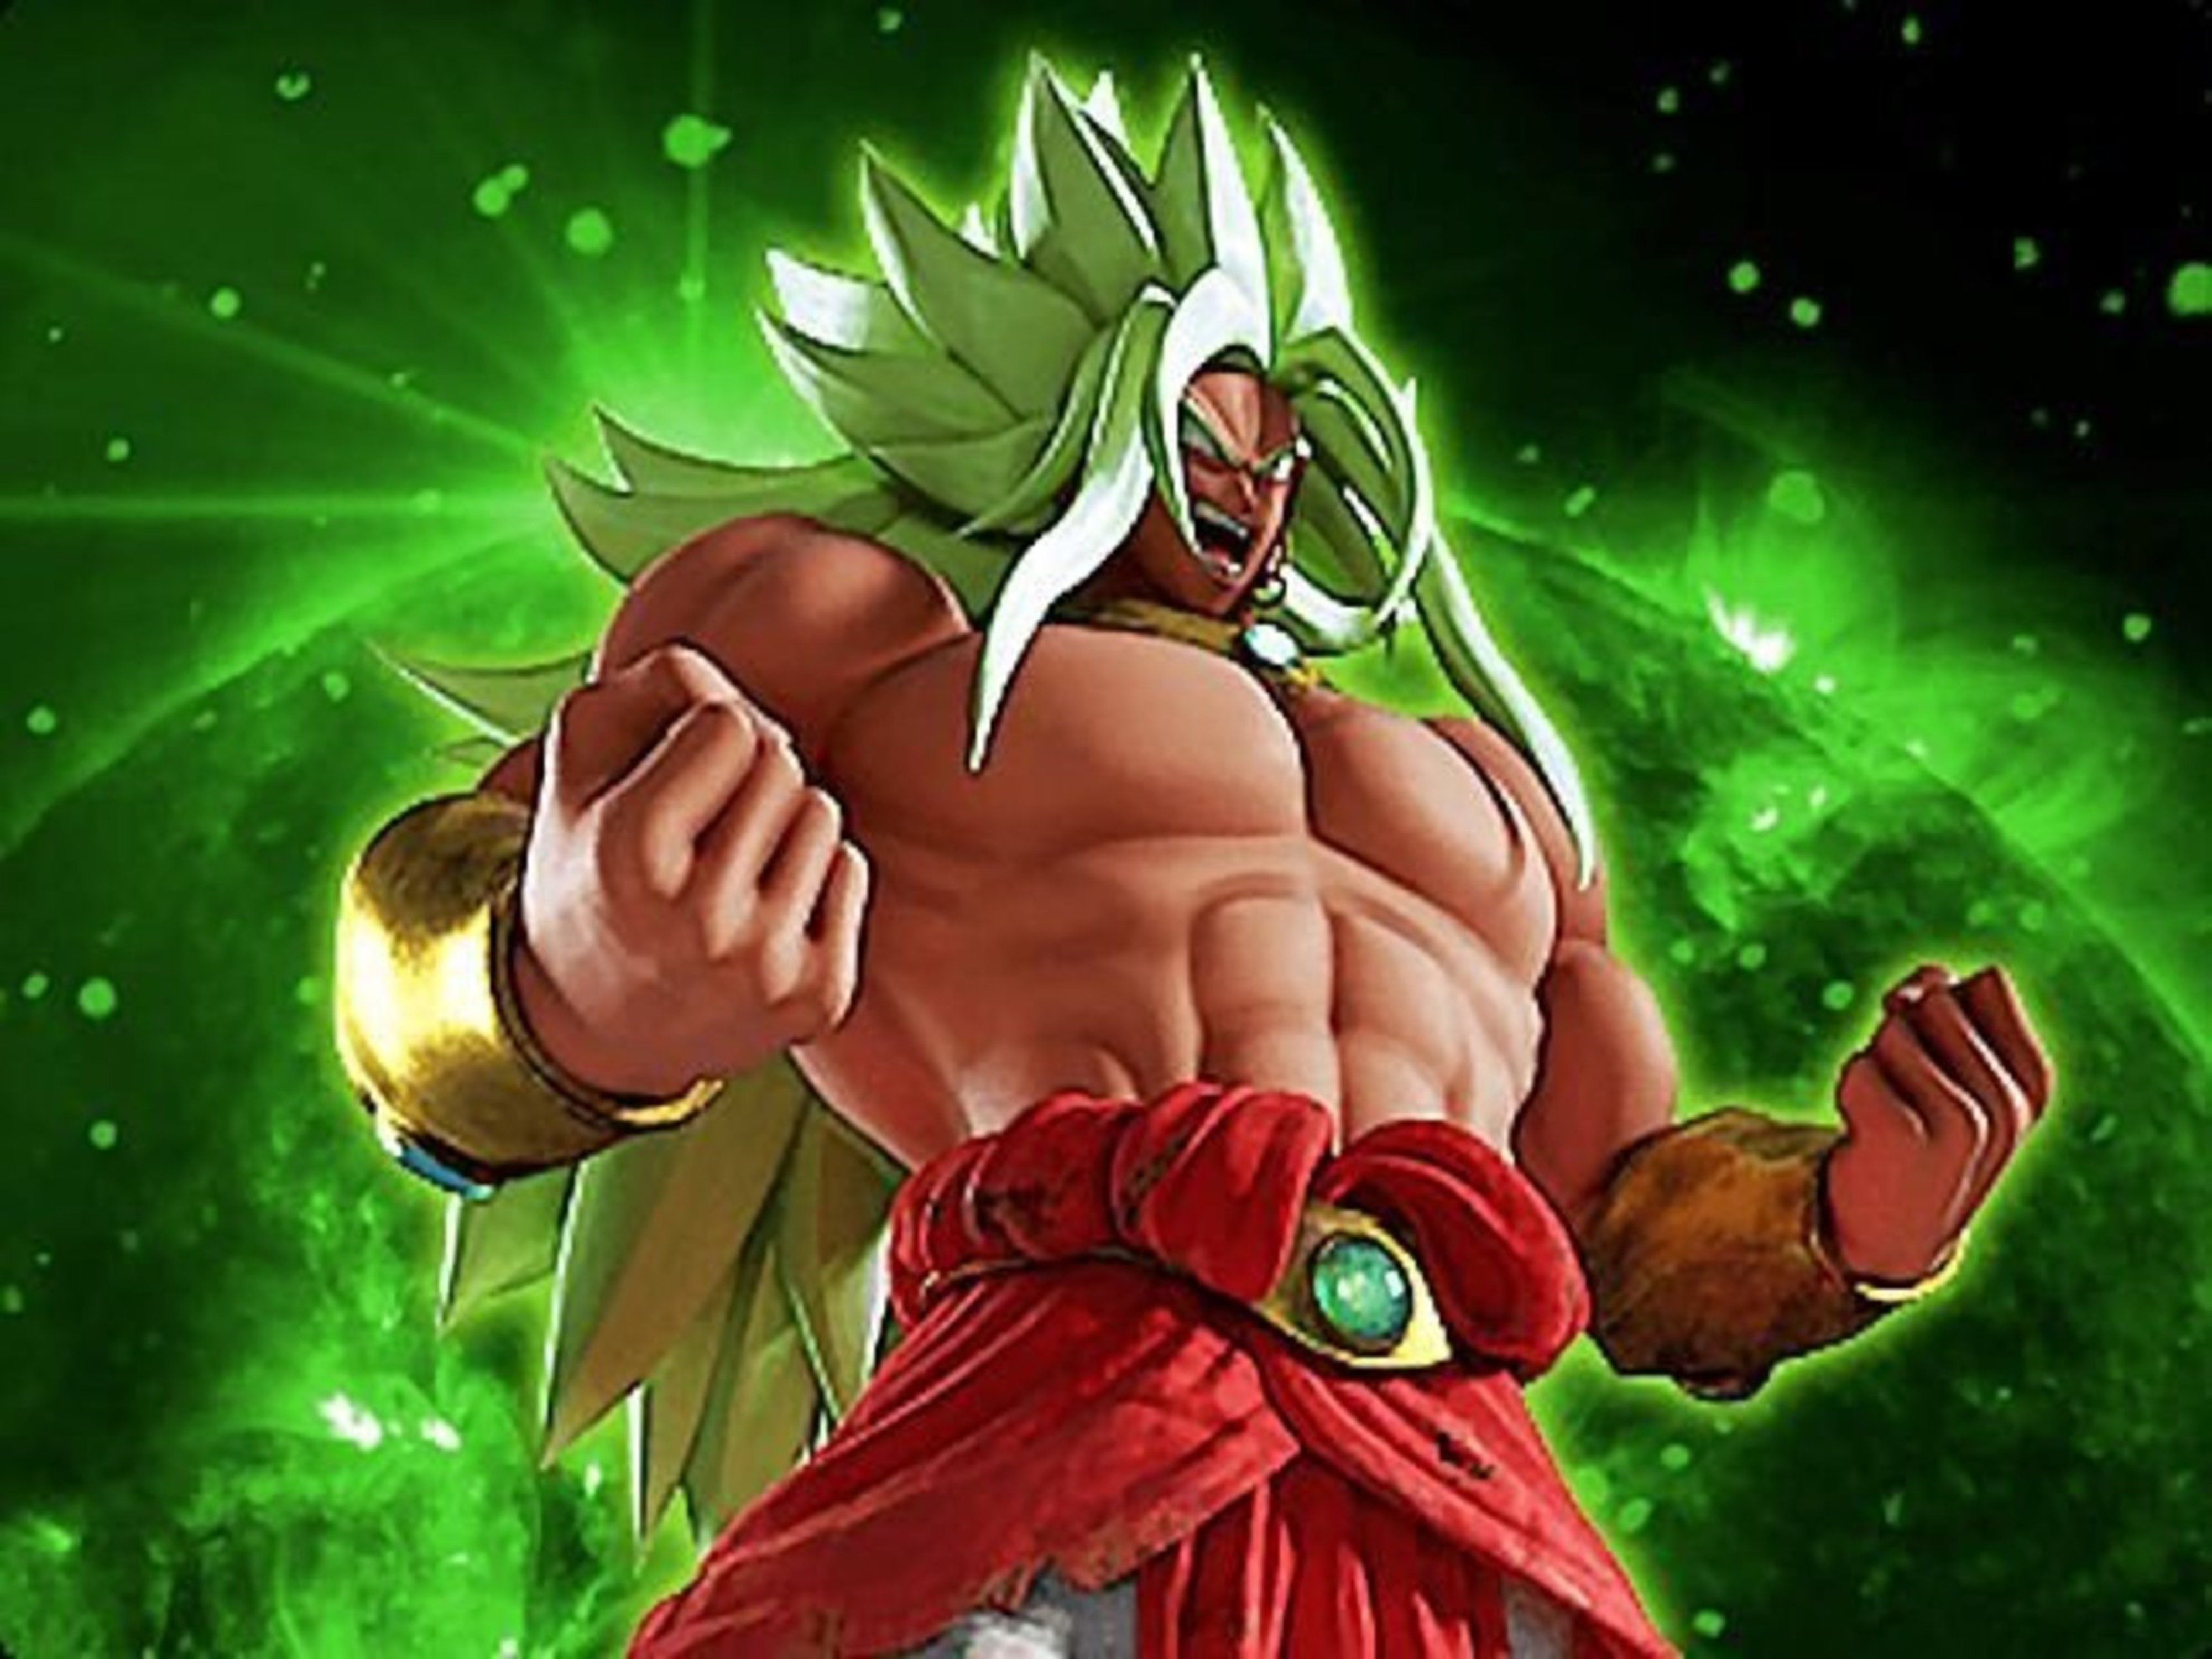 Broly Can Turn Legendary Super Saiyan God Now In The New 4D Movie